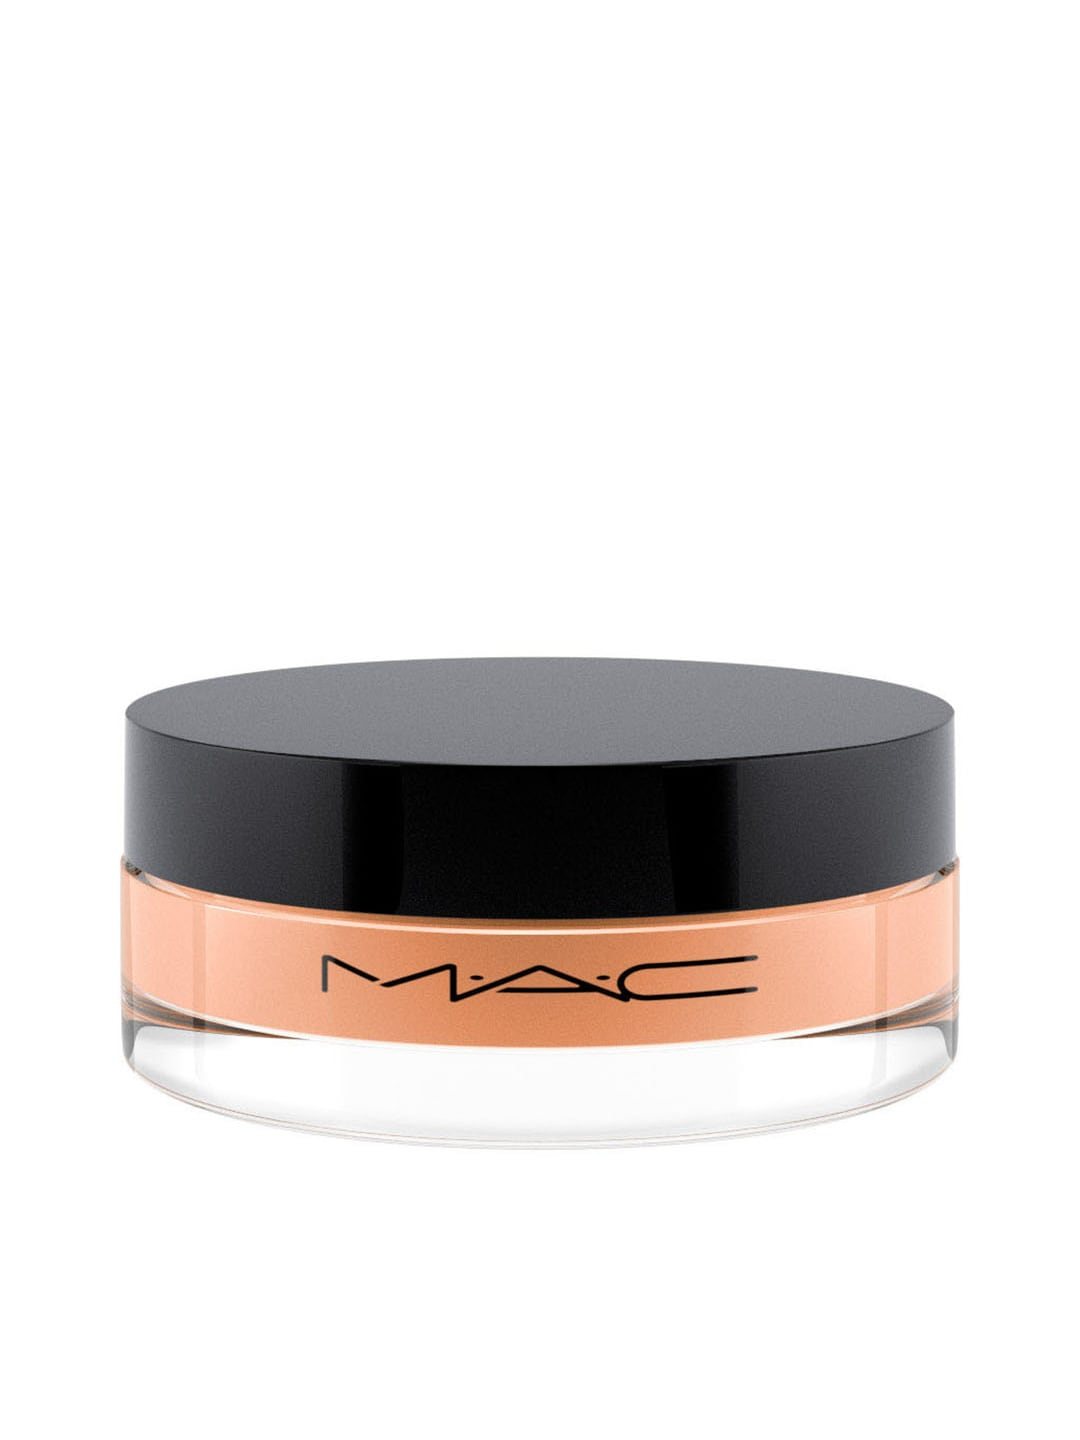 M.A.C Dark Studio Fix Perfecting Powder Compact image